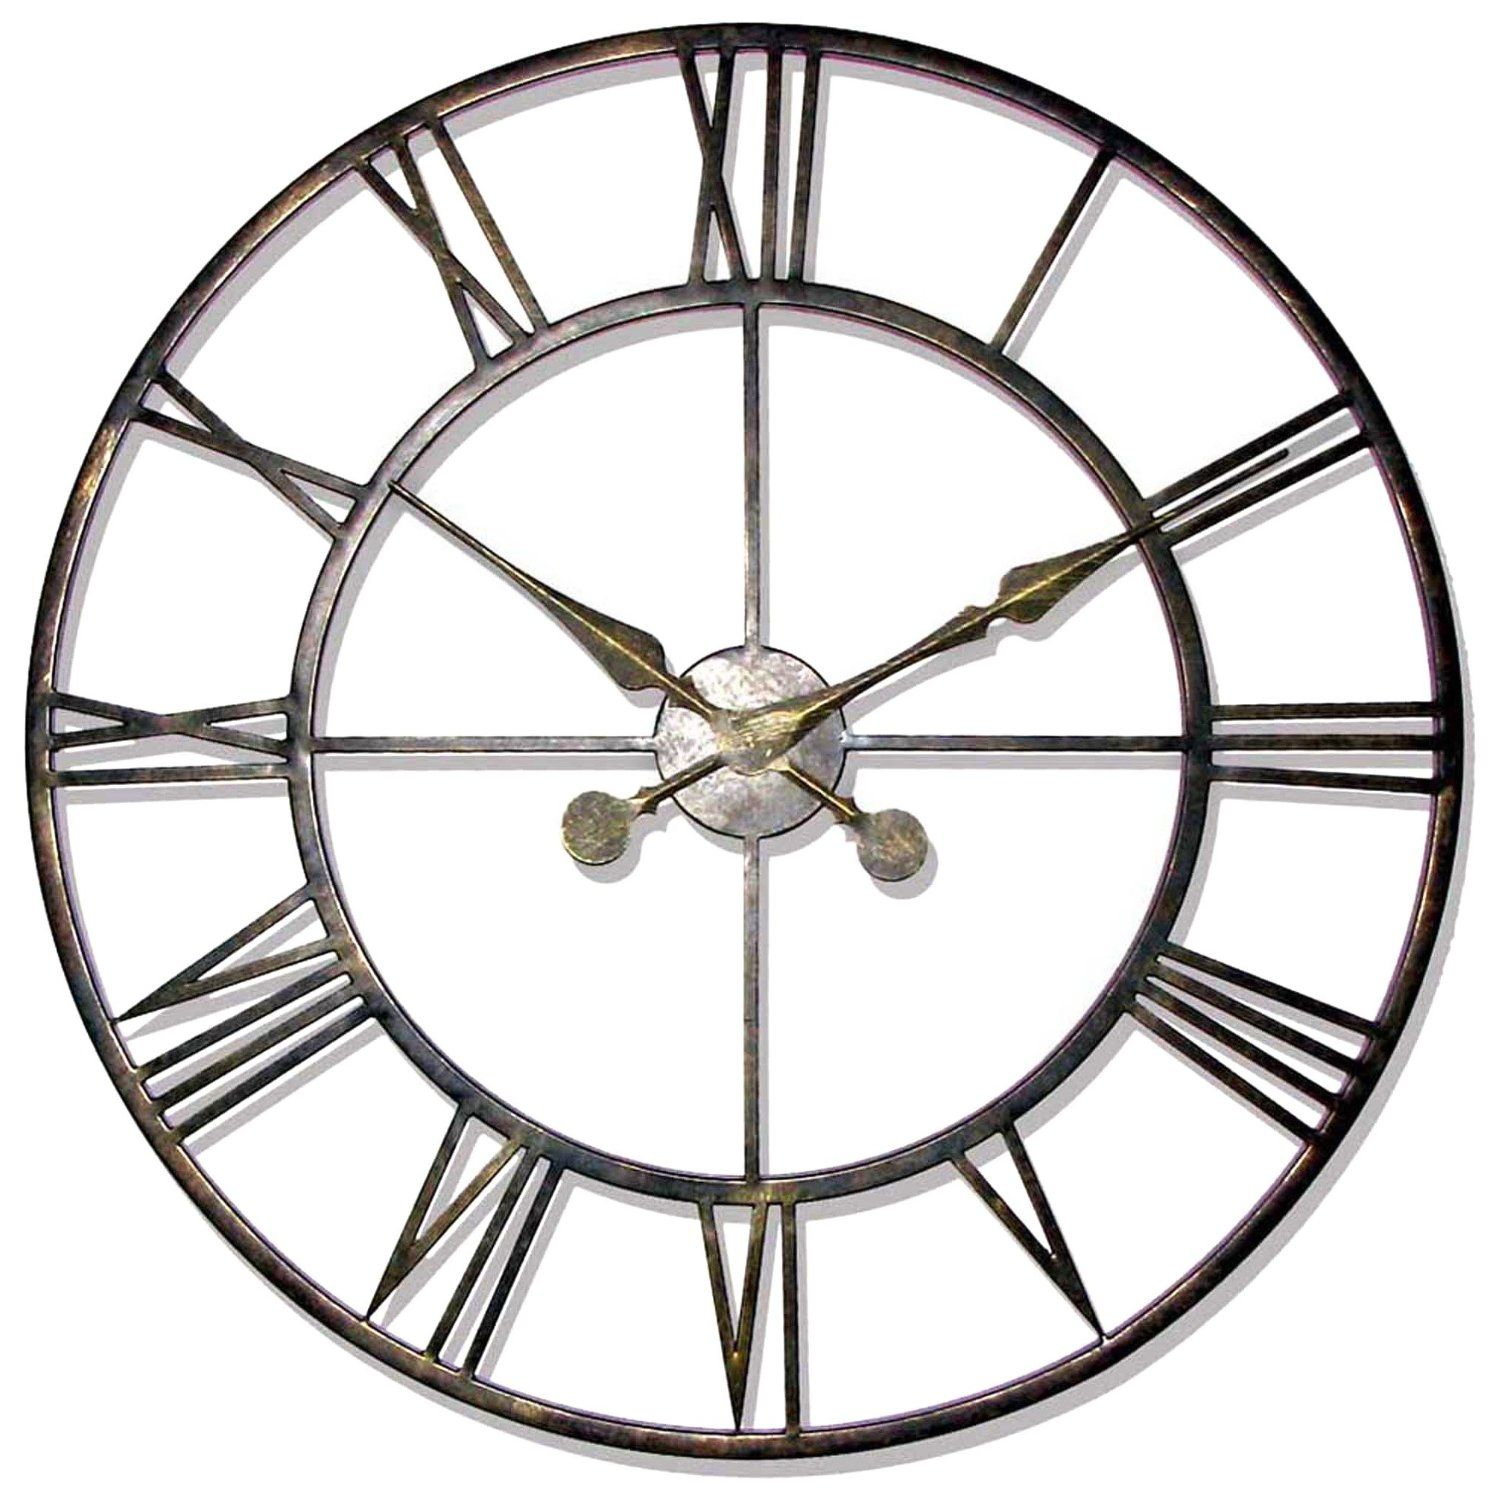 Wall Clock Decor stylish large wall clocks | fun & fashionable home accessories and